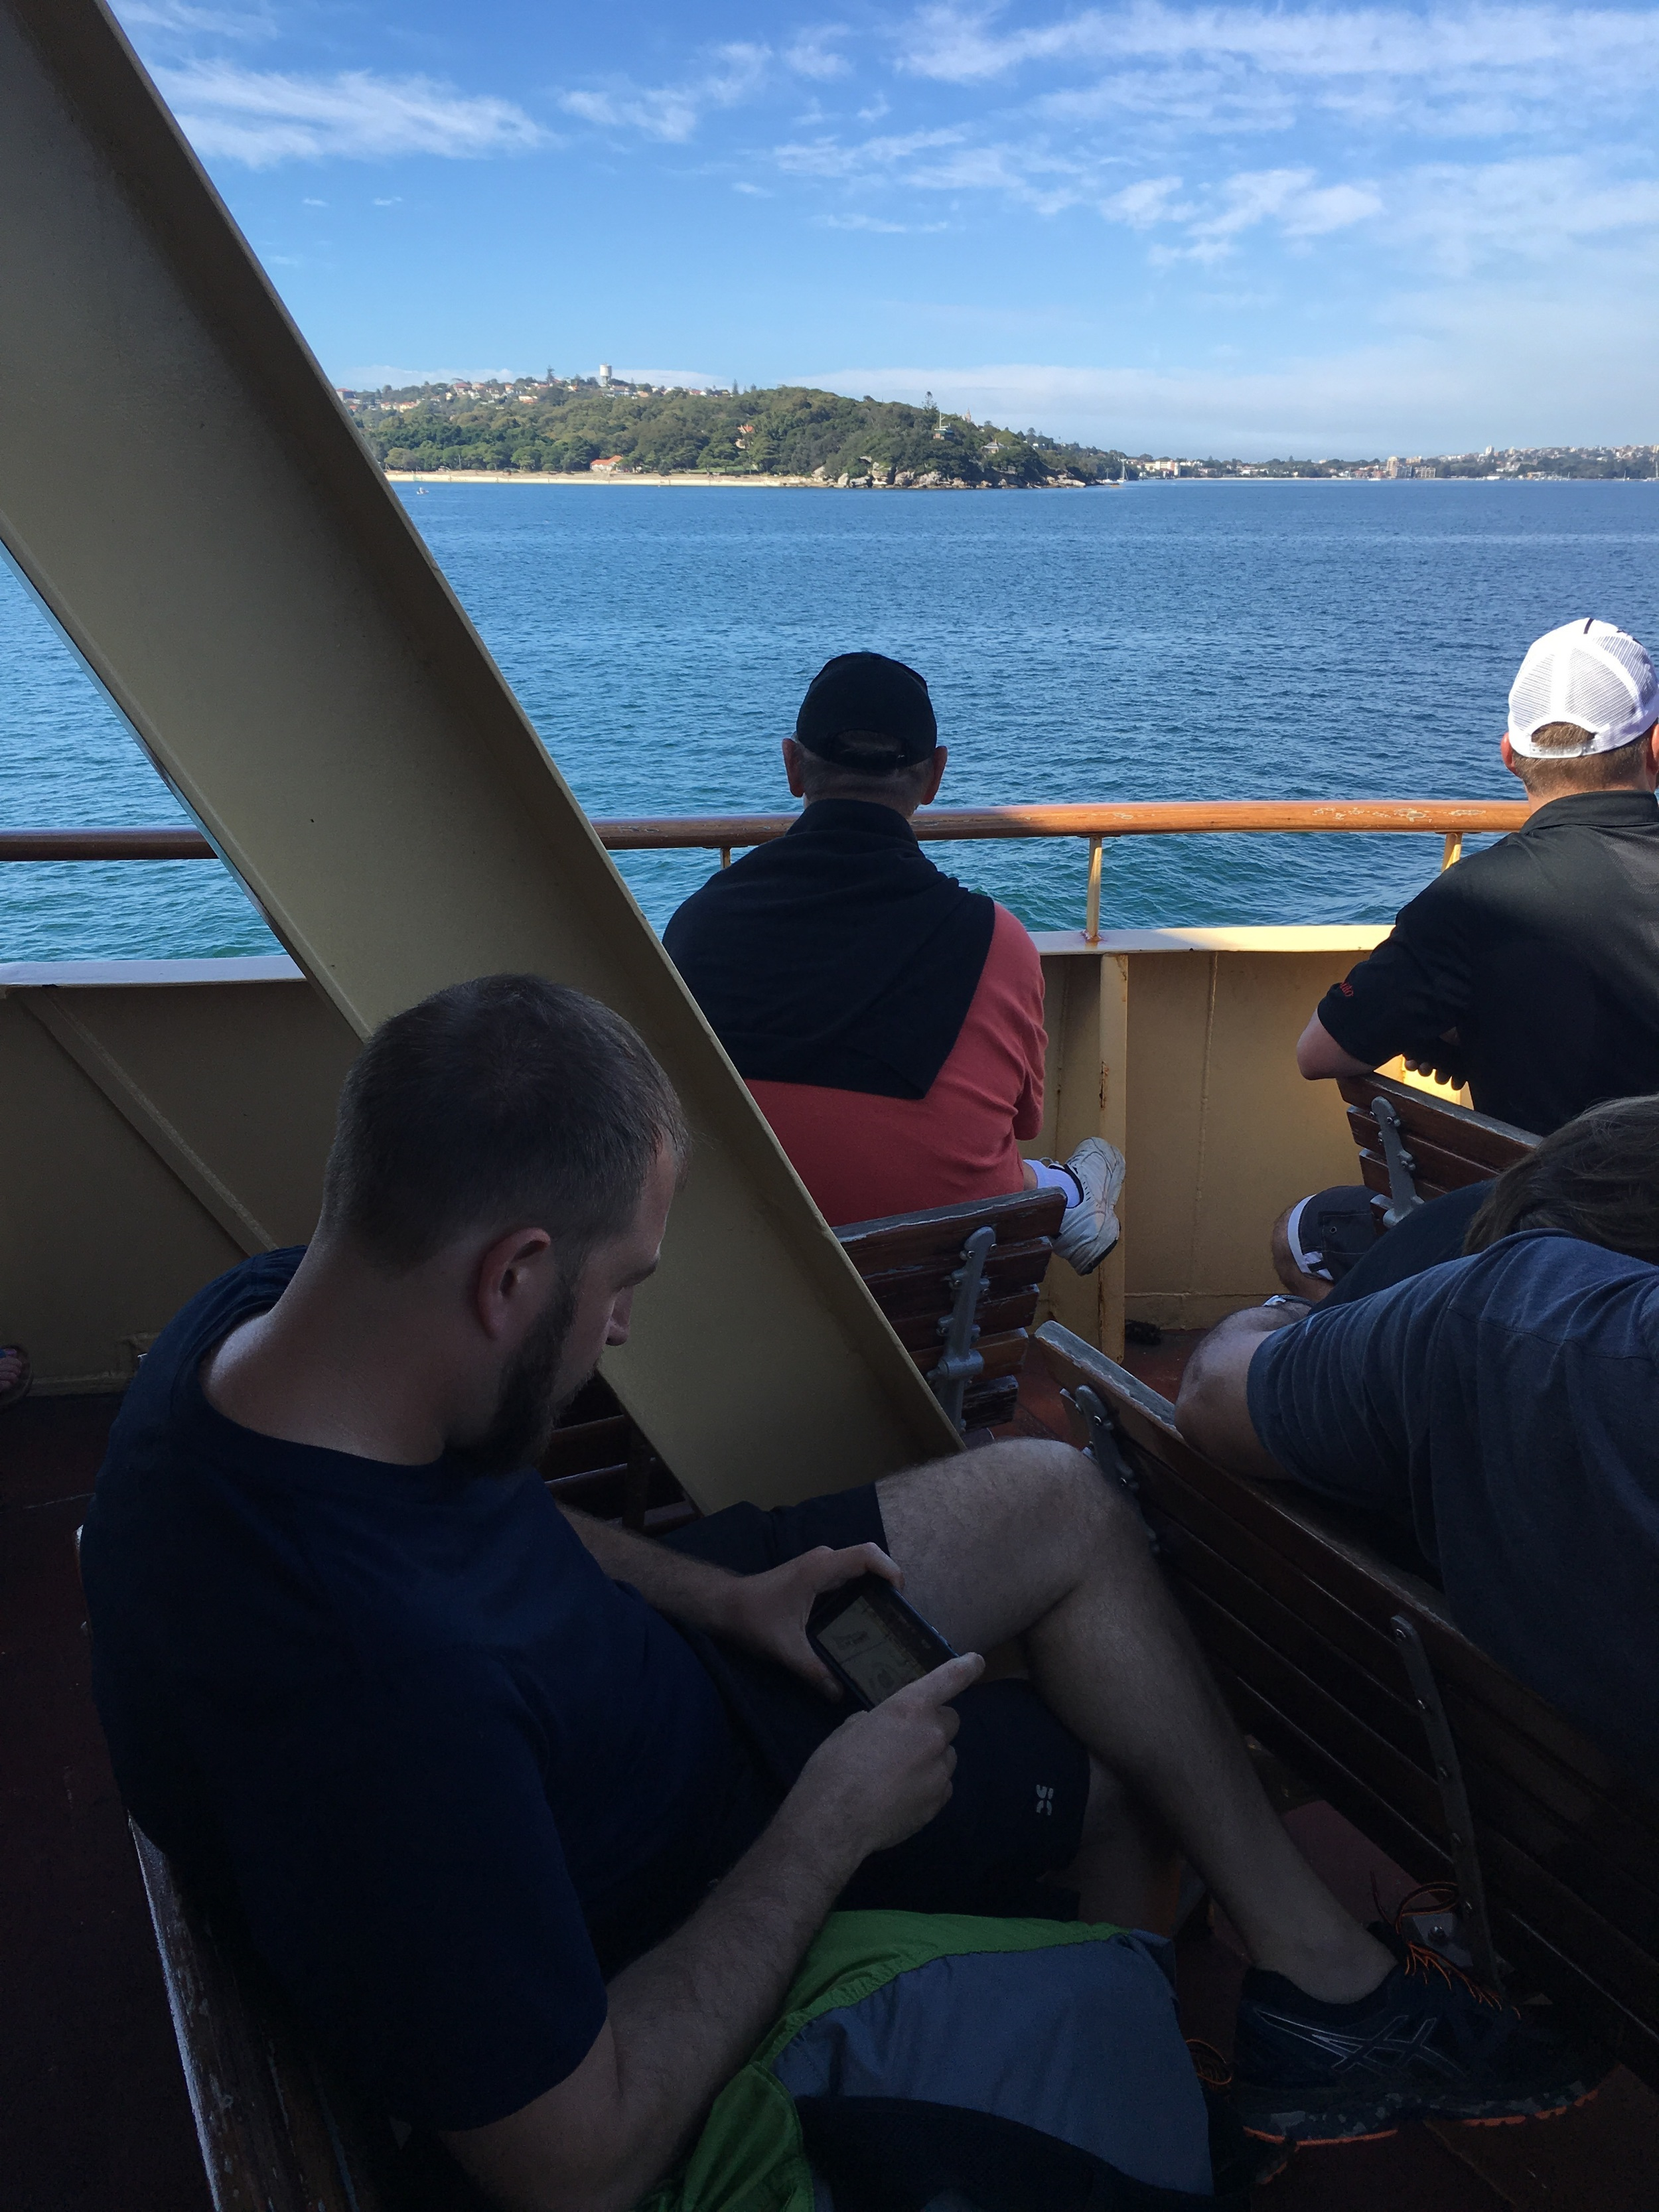 Taking in the sights on the ferry to Manly Beach